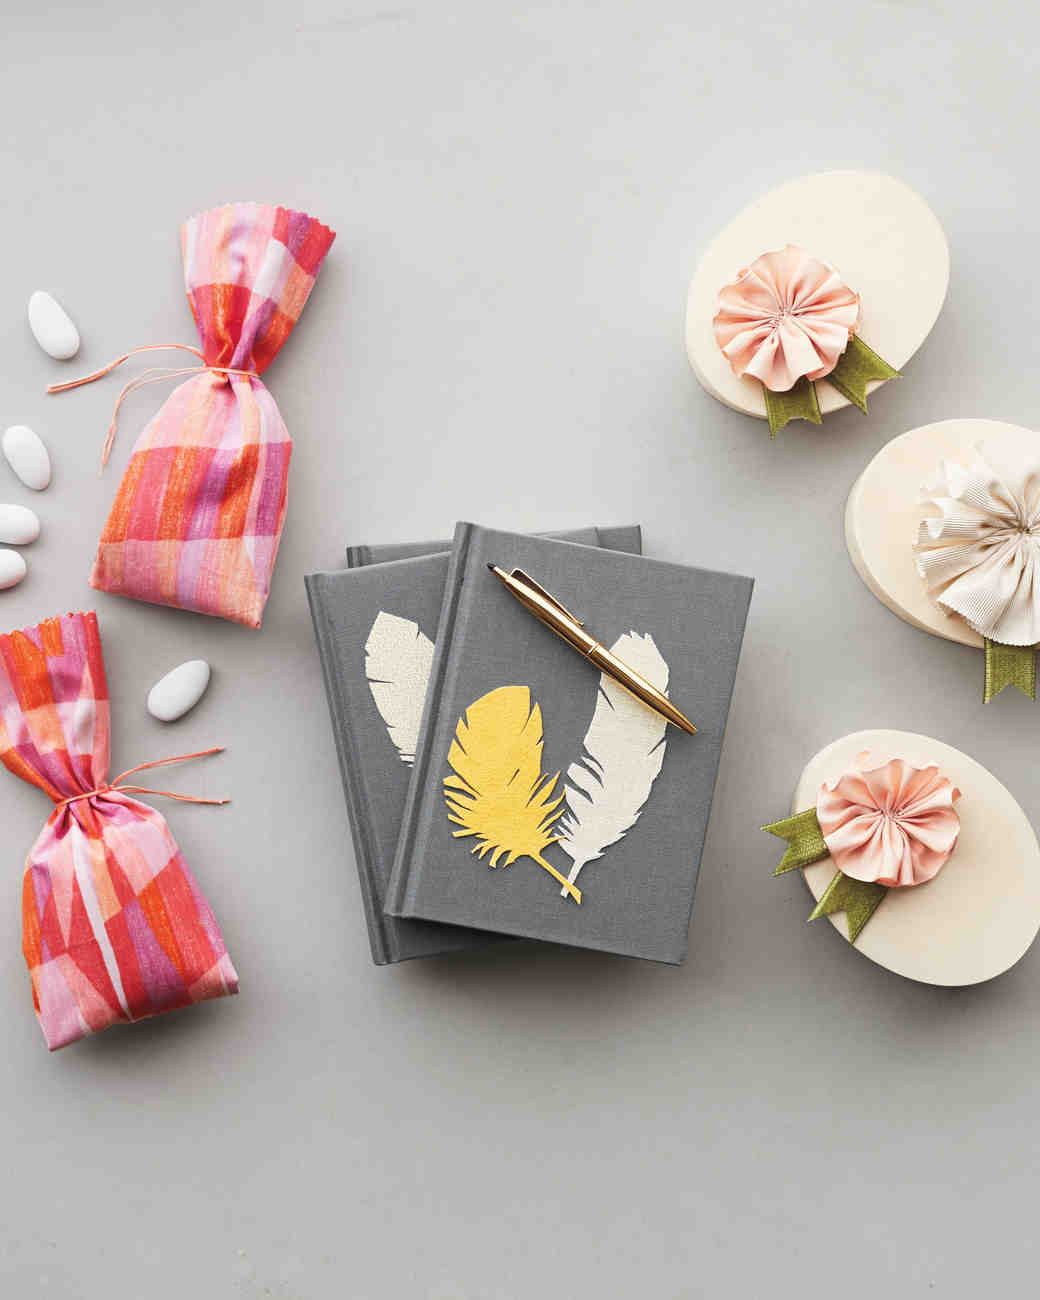 3 Wedding Favors That Will Have Guests